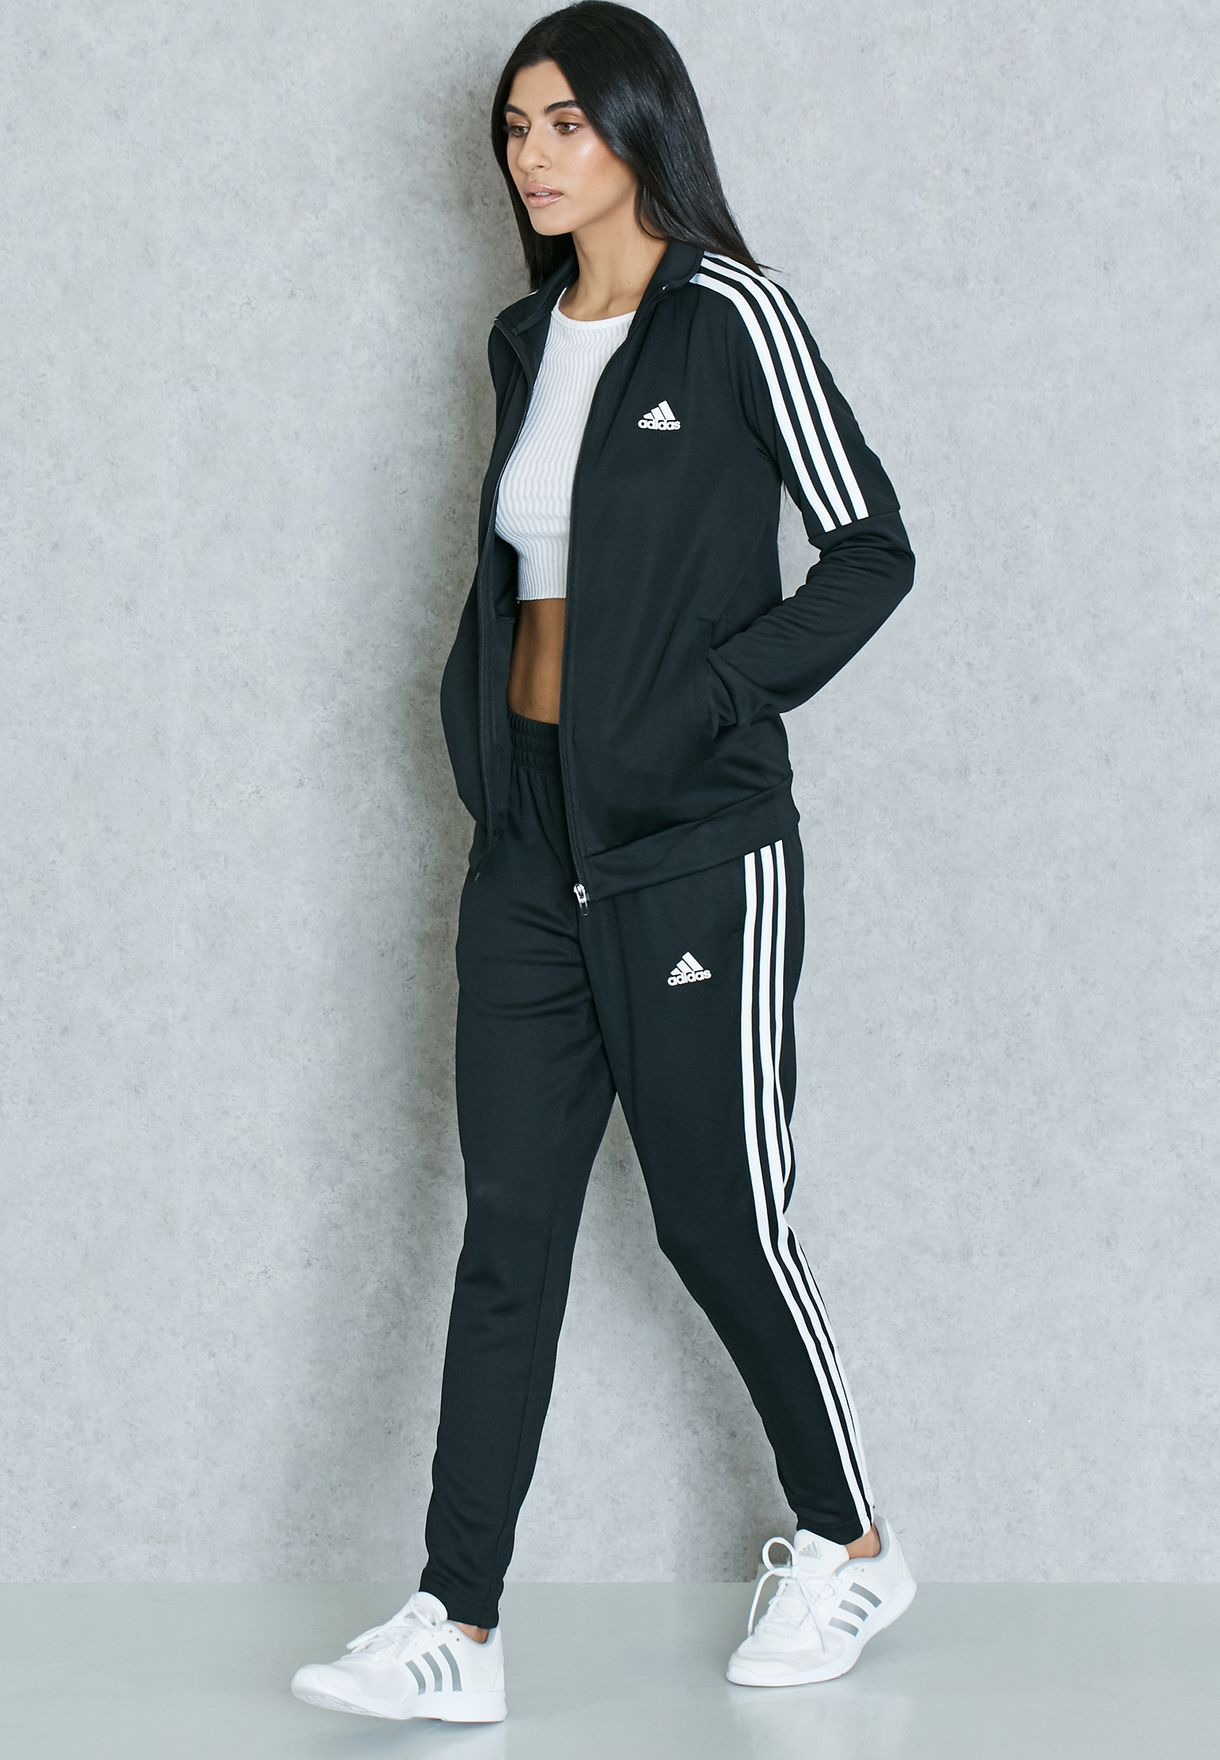 Pin by Francie Clower on Work Out | Adidas jacket outfit